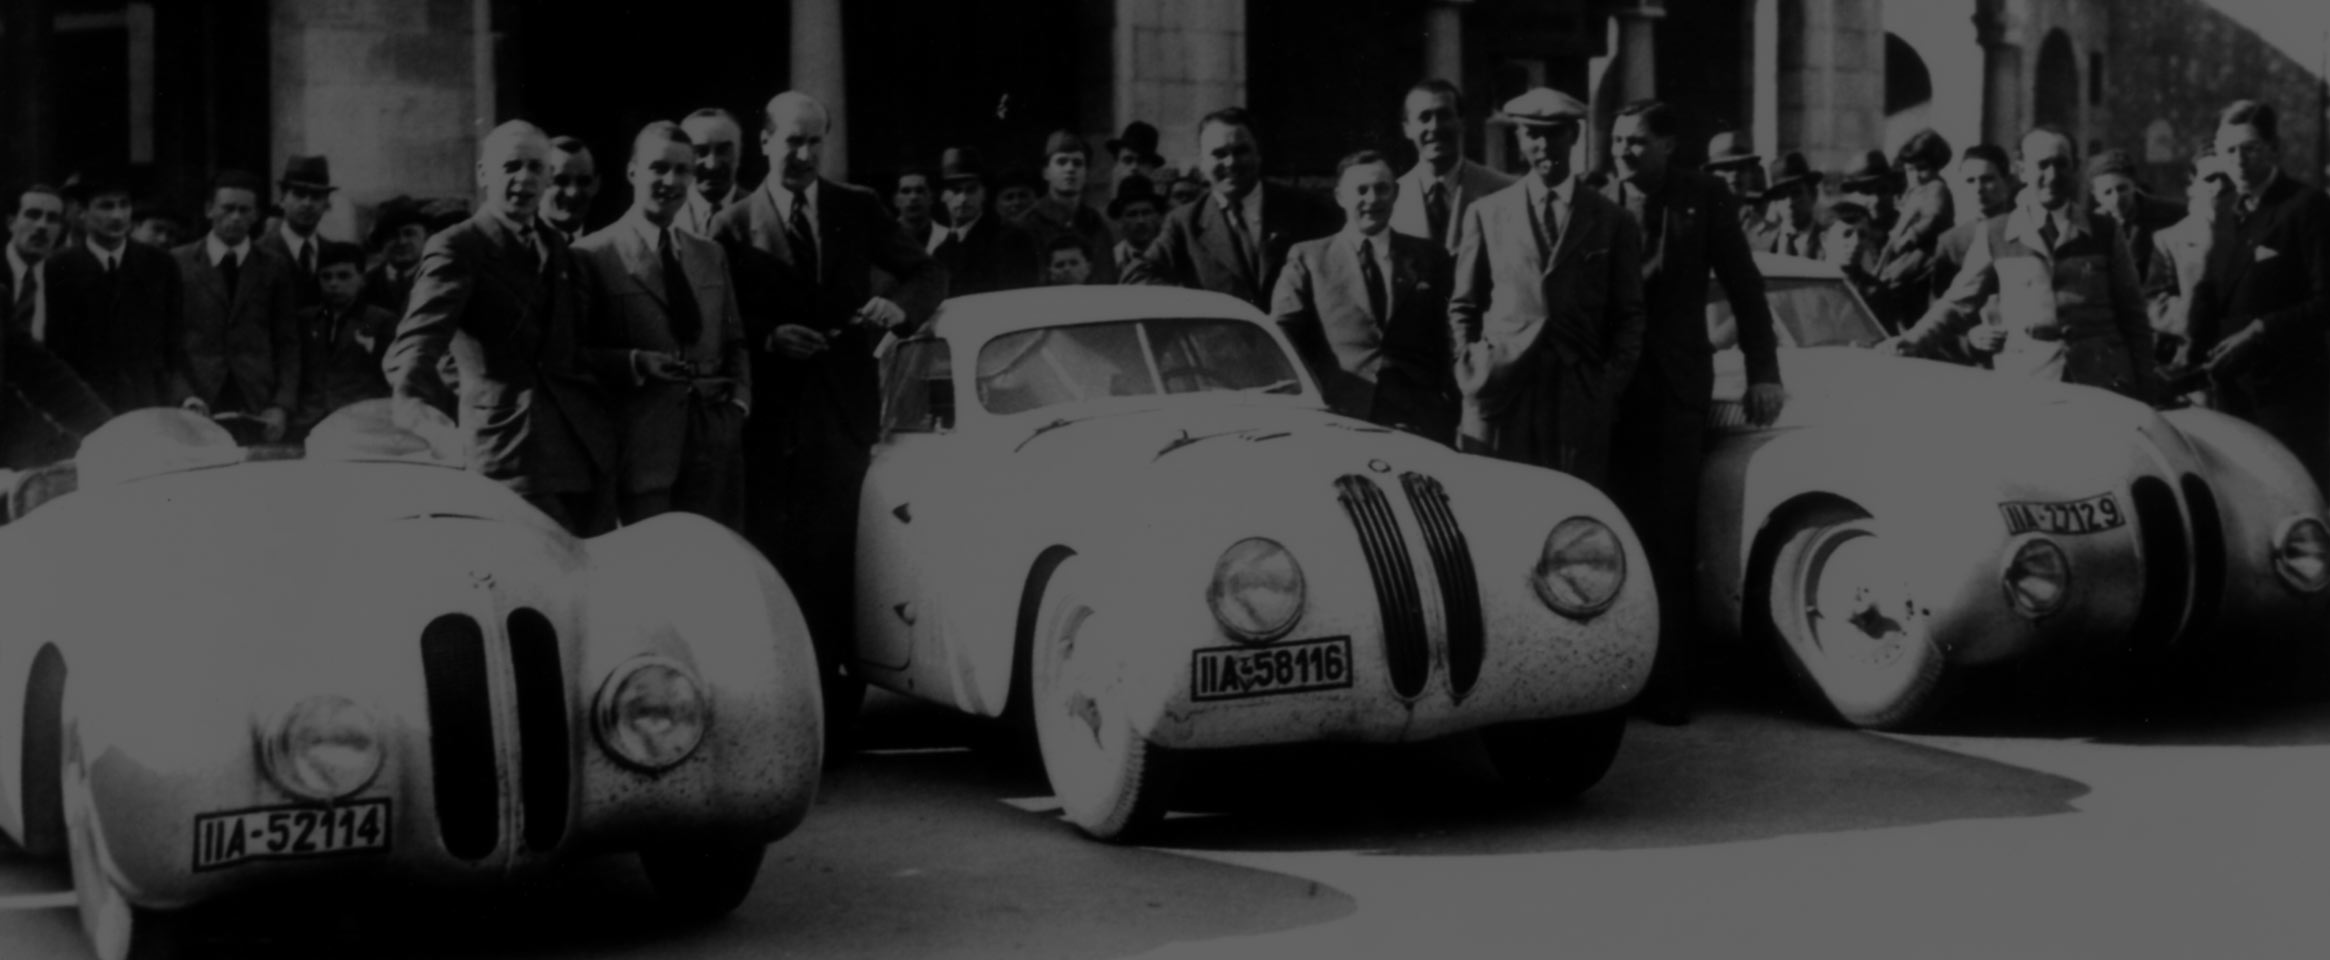 The history of a legendary race - 90 years of the Mille Miglia